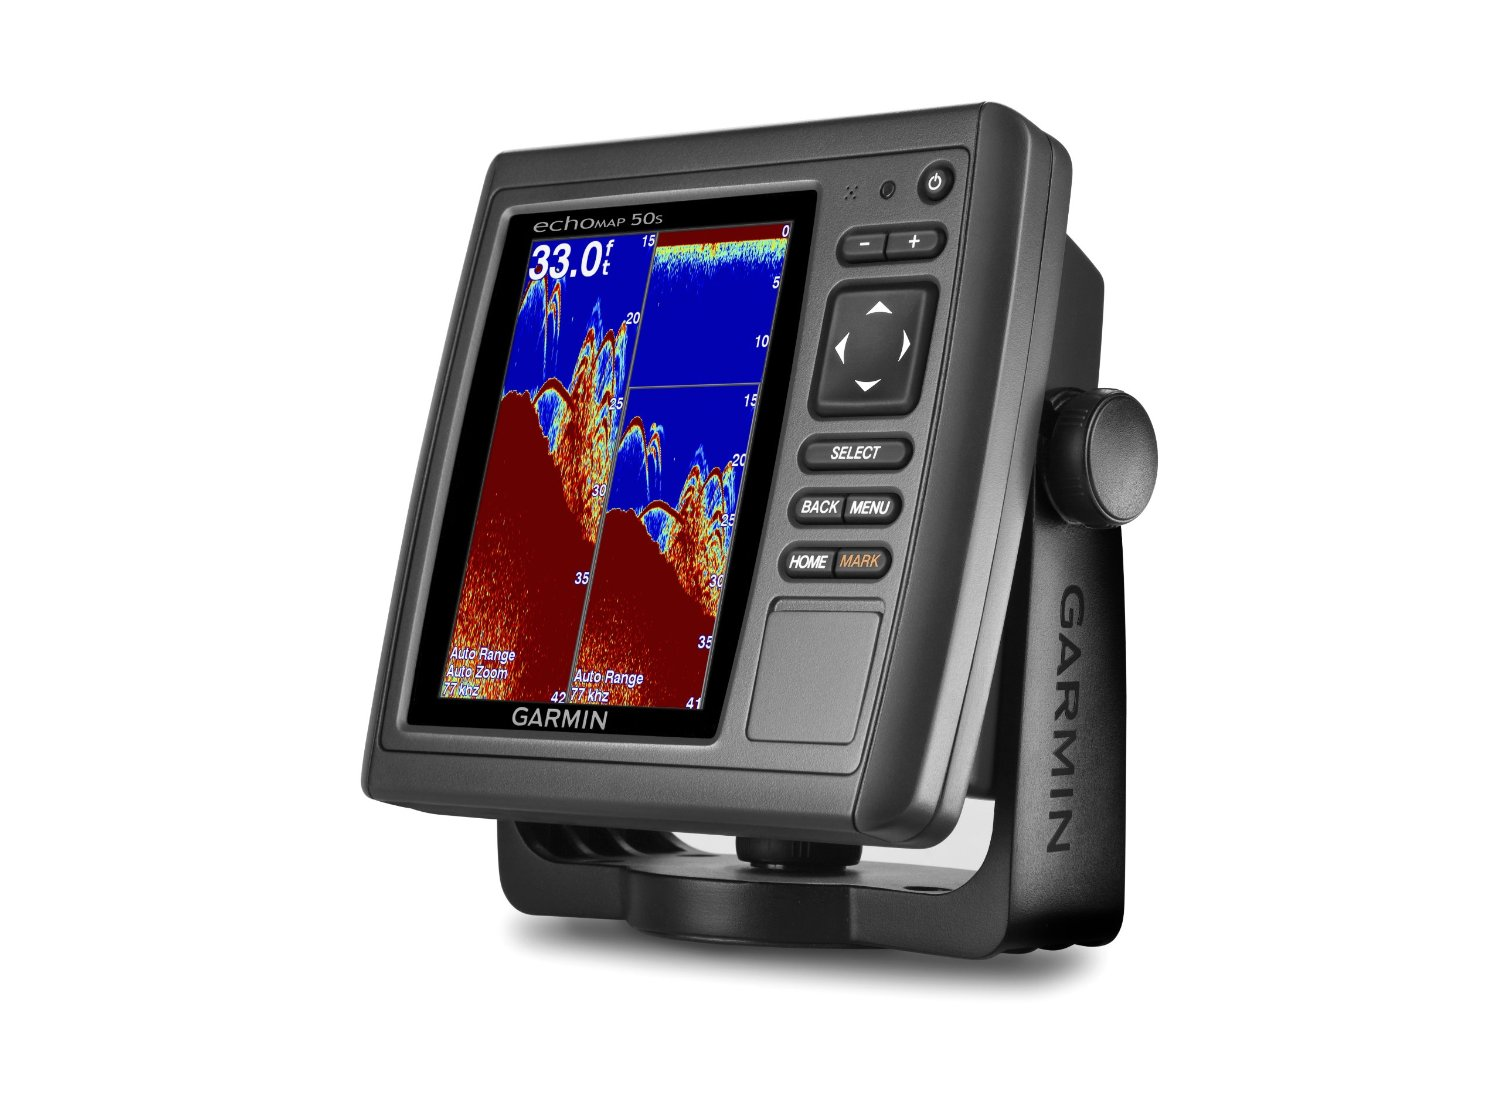 garmin echomap 94sv review, Fish Finder